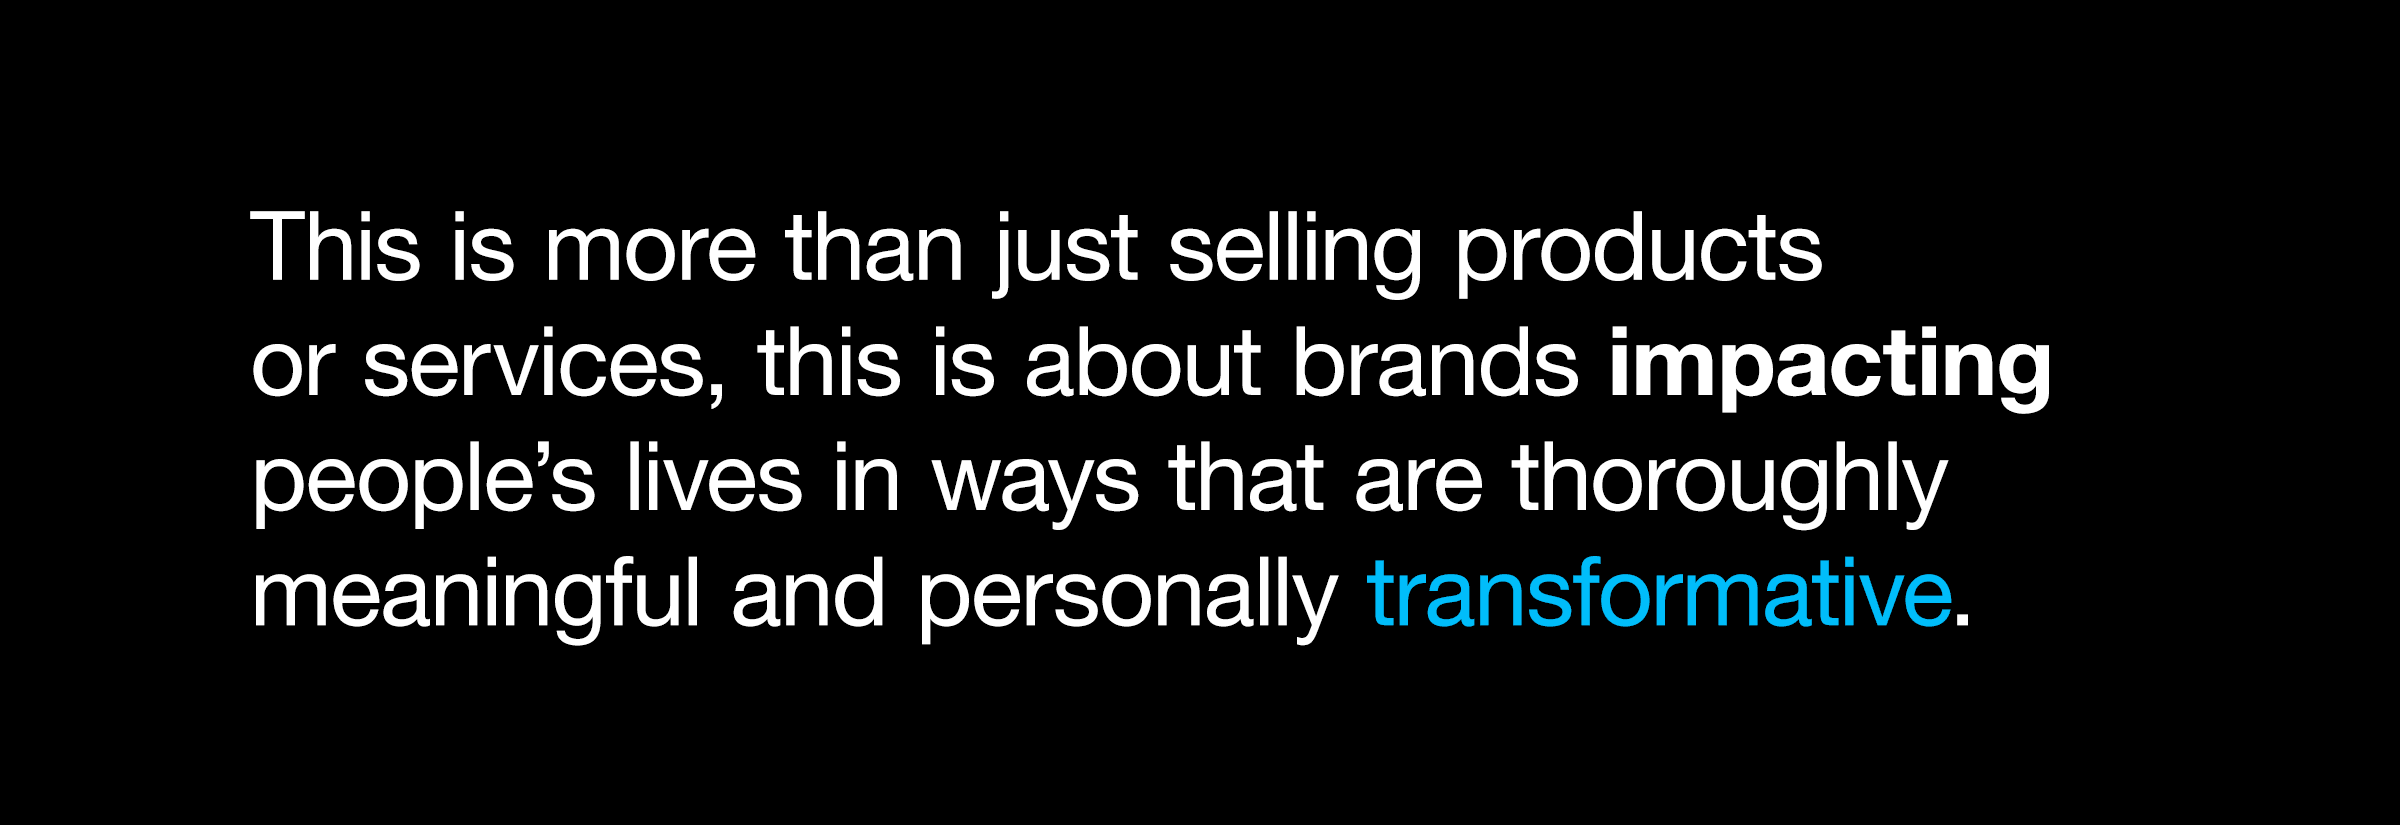 Blurring the Brand Experience Boundaries Quote Image